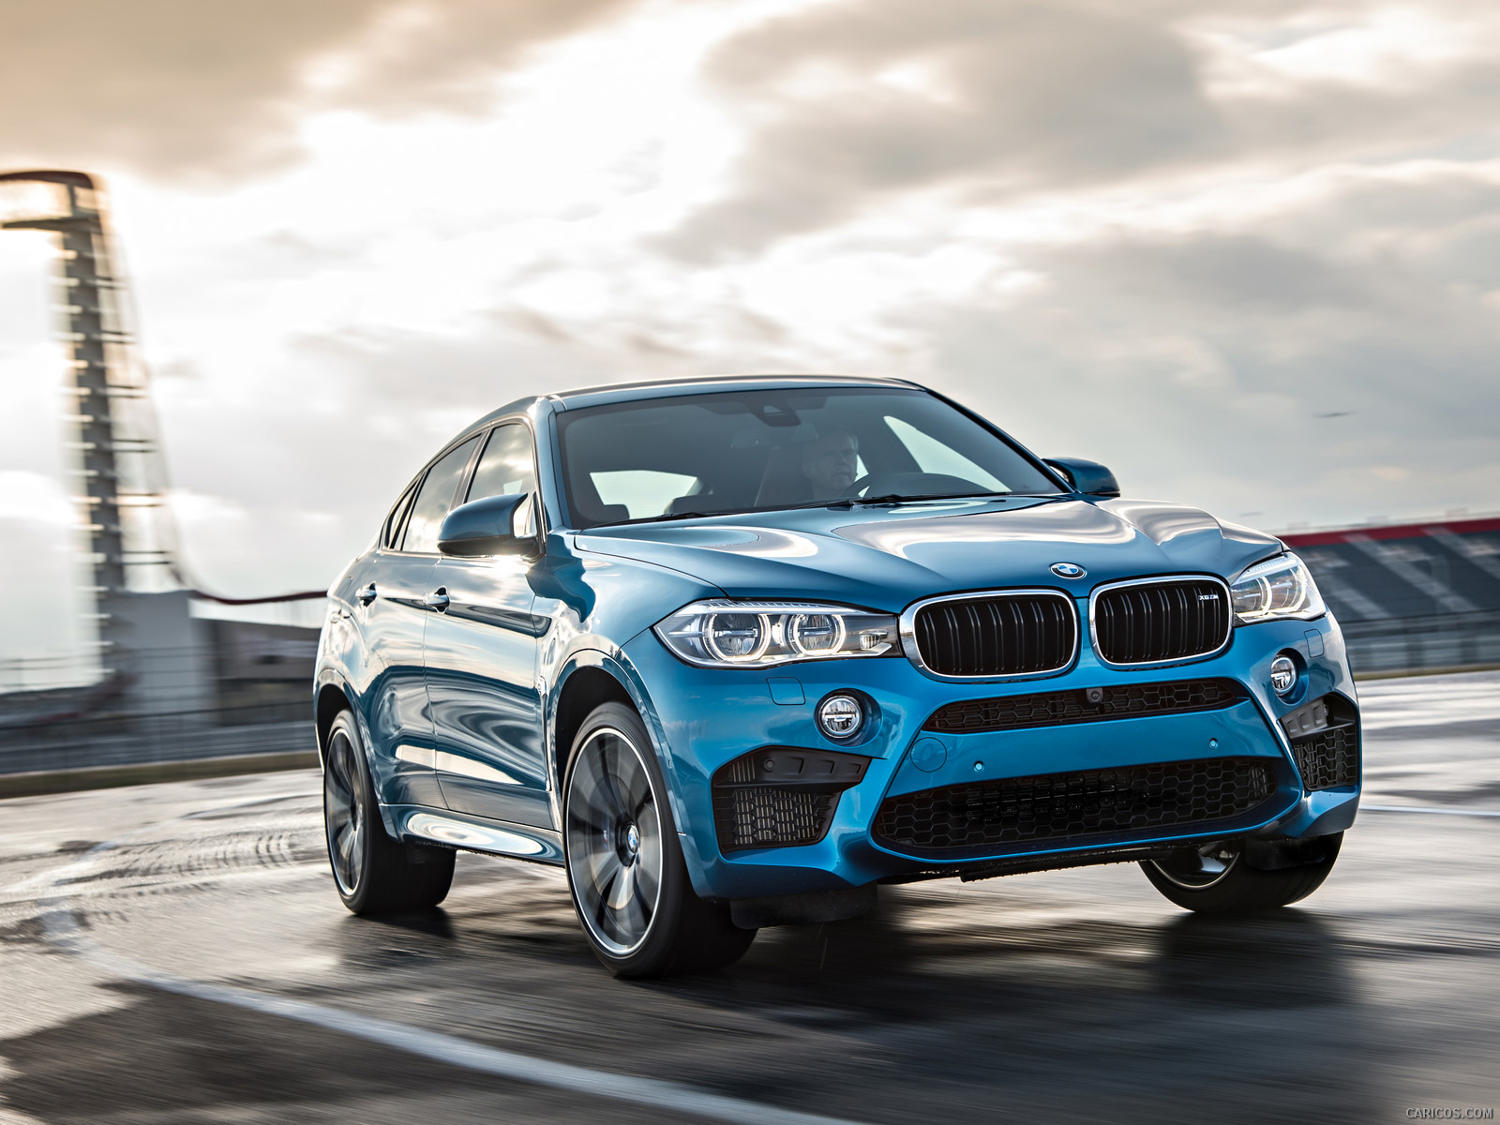 Comparison Bmw X6 M 2016 Vs Porsche Macan Turbo 2016 Suv Drive